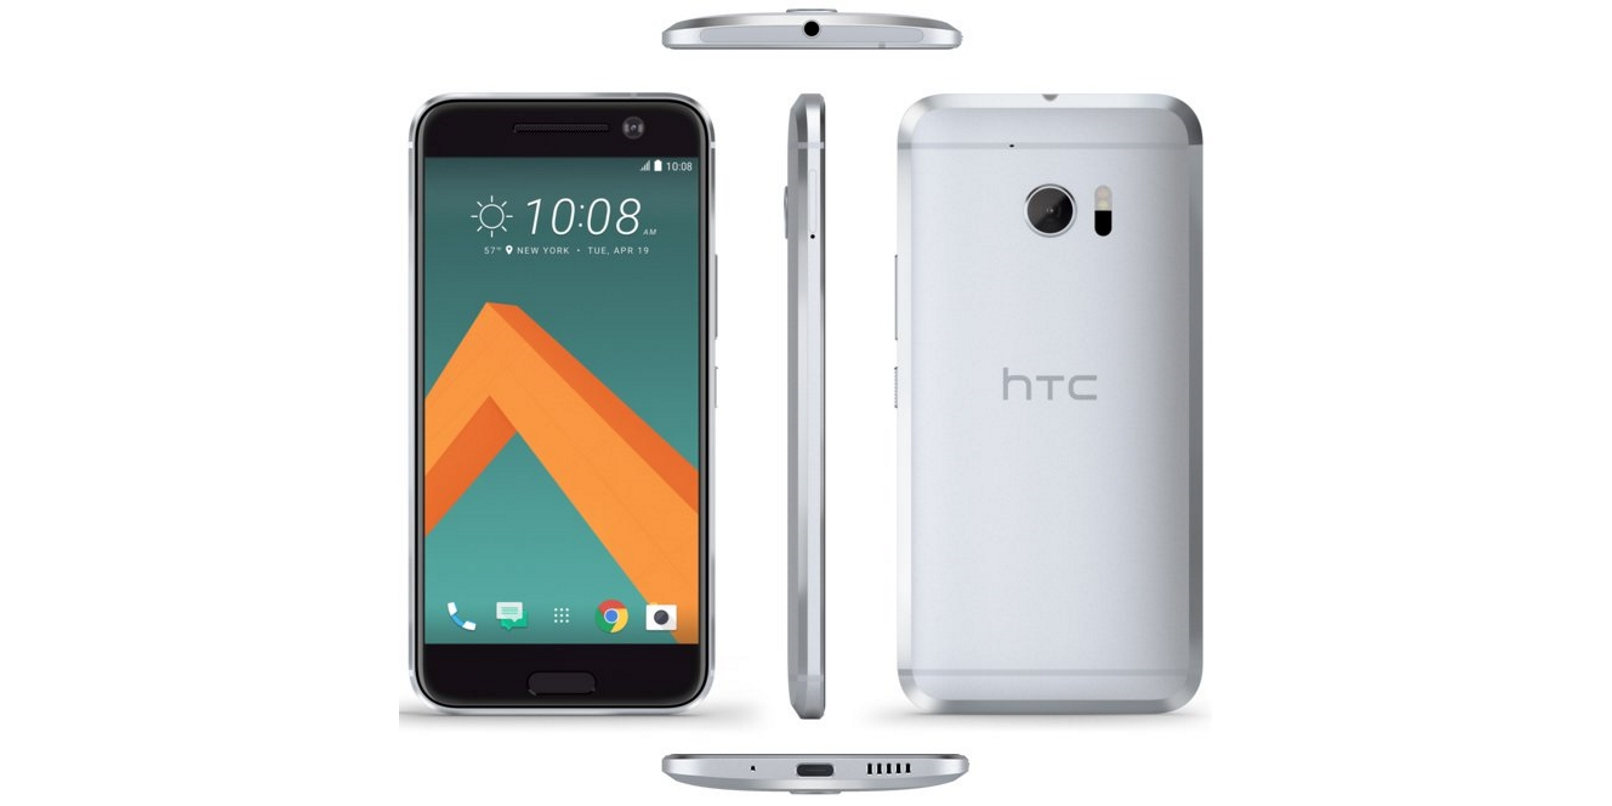 Do the leaked HTC 10 images look quite a lot like an old iPhone?